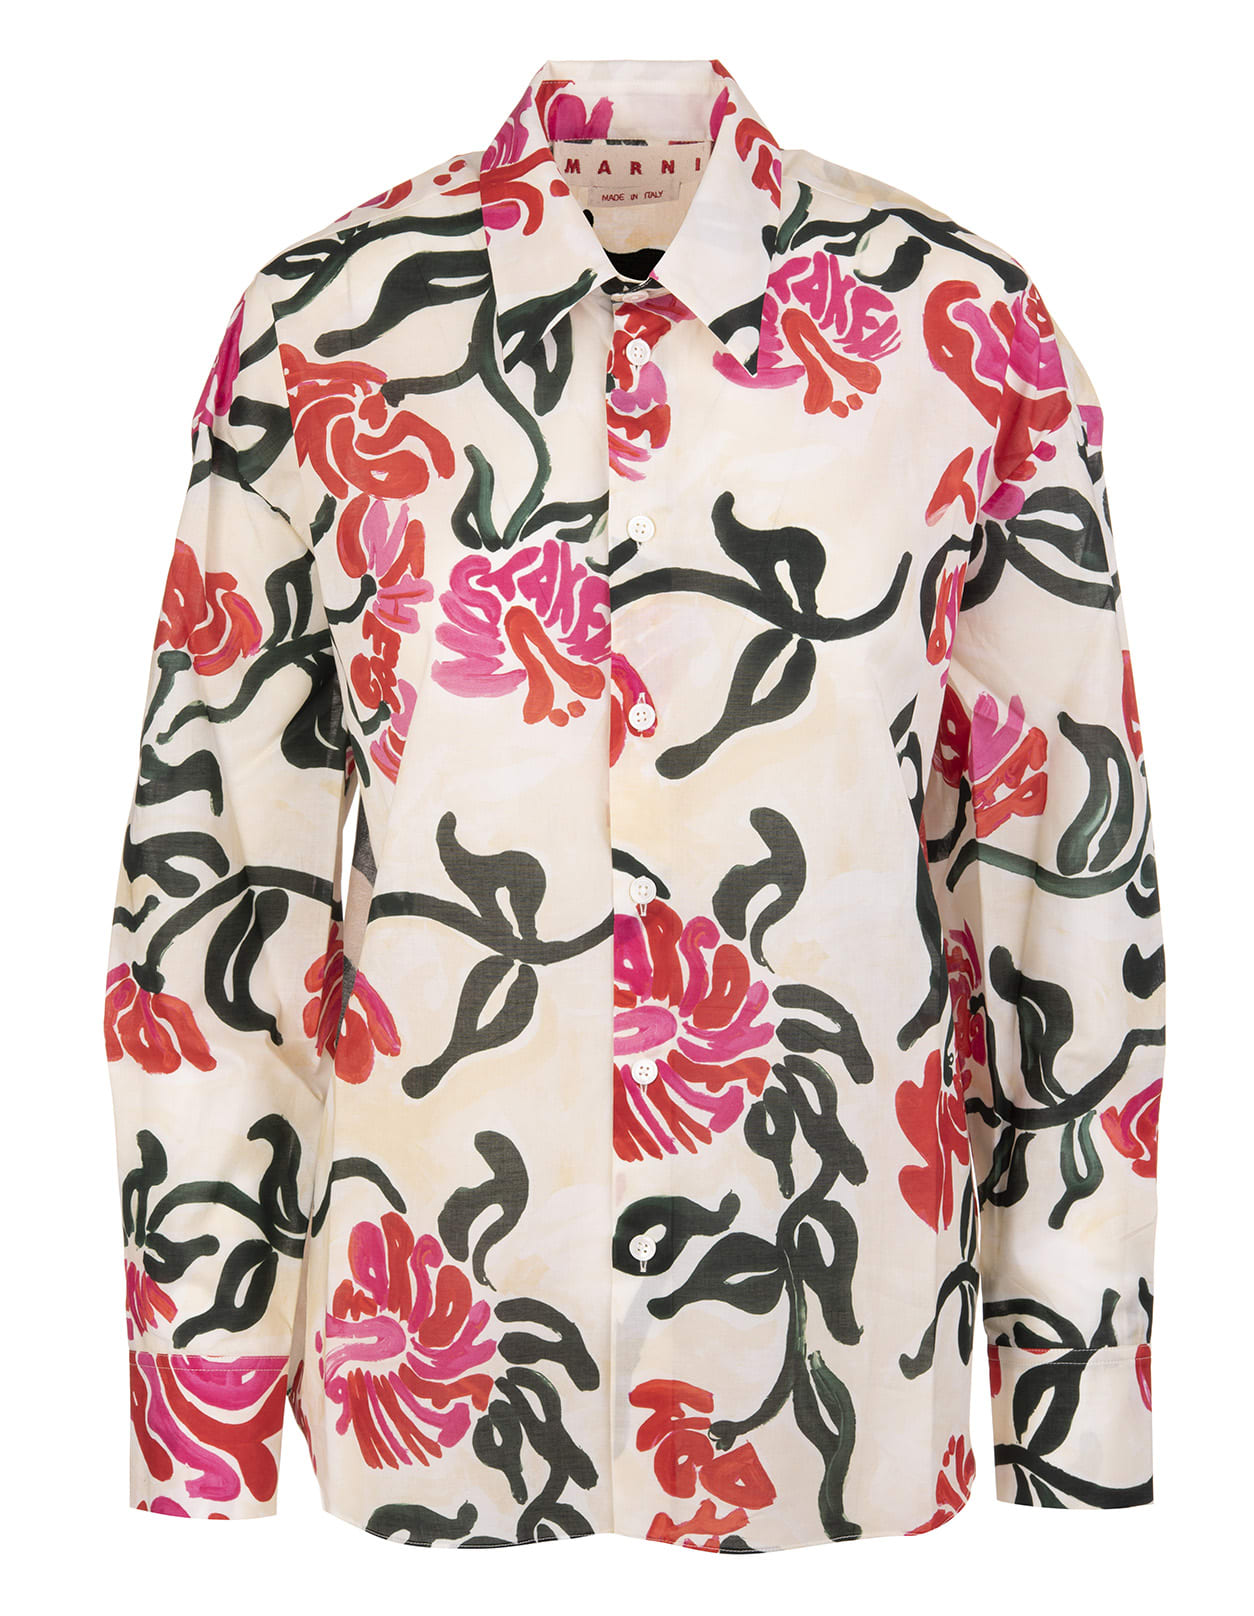 Marni FLORAL-PRINT LONG-SLEEVE SHIRT